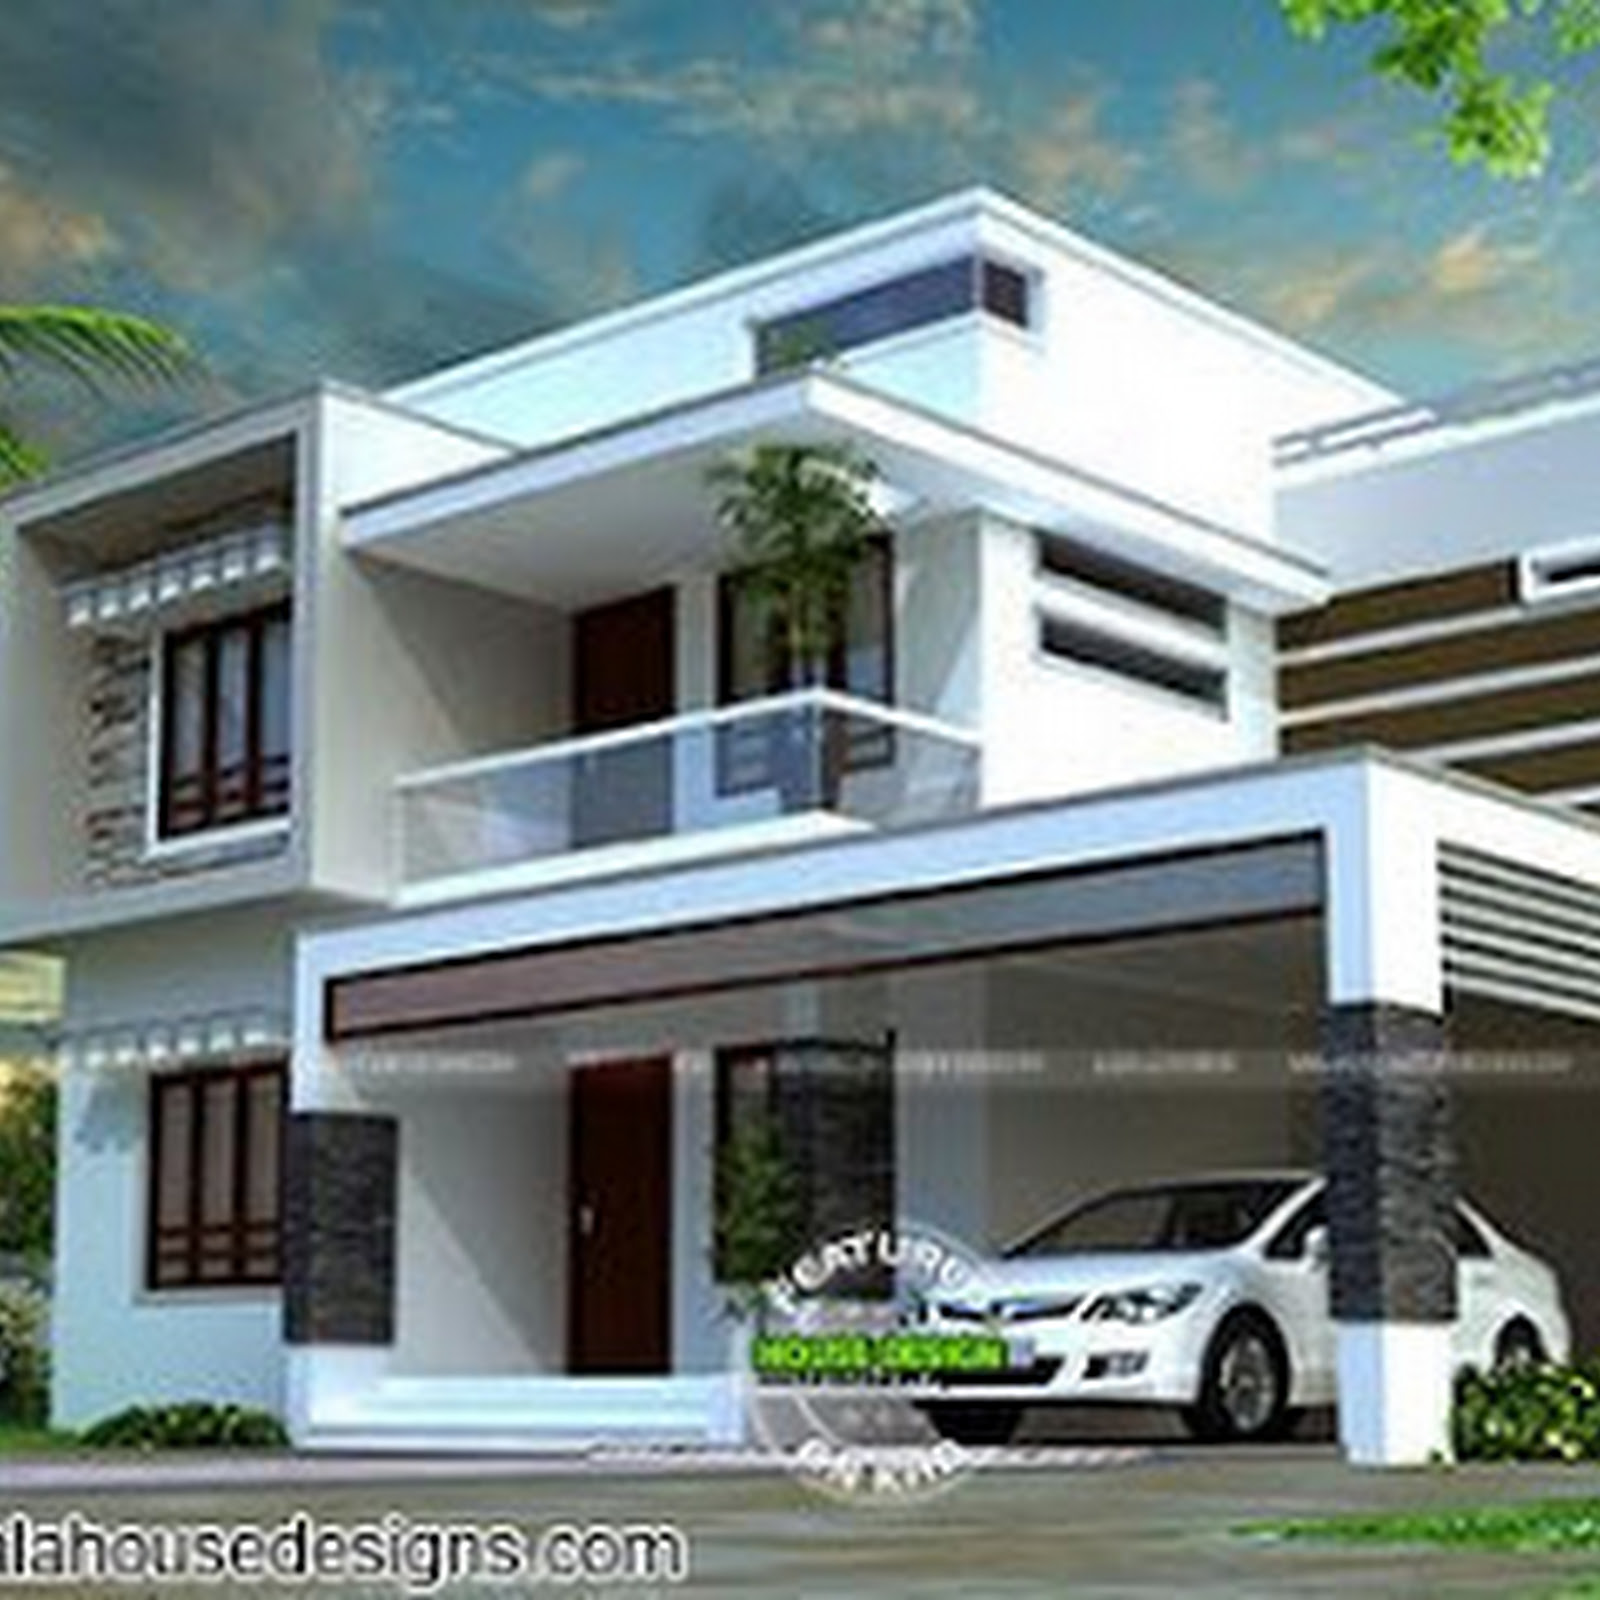 1750 sq-ft 4 BHK box model contemporary house